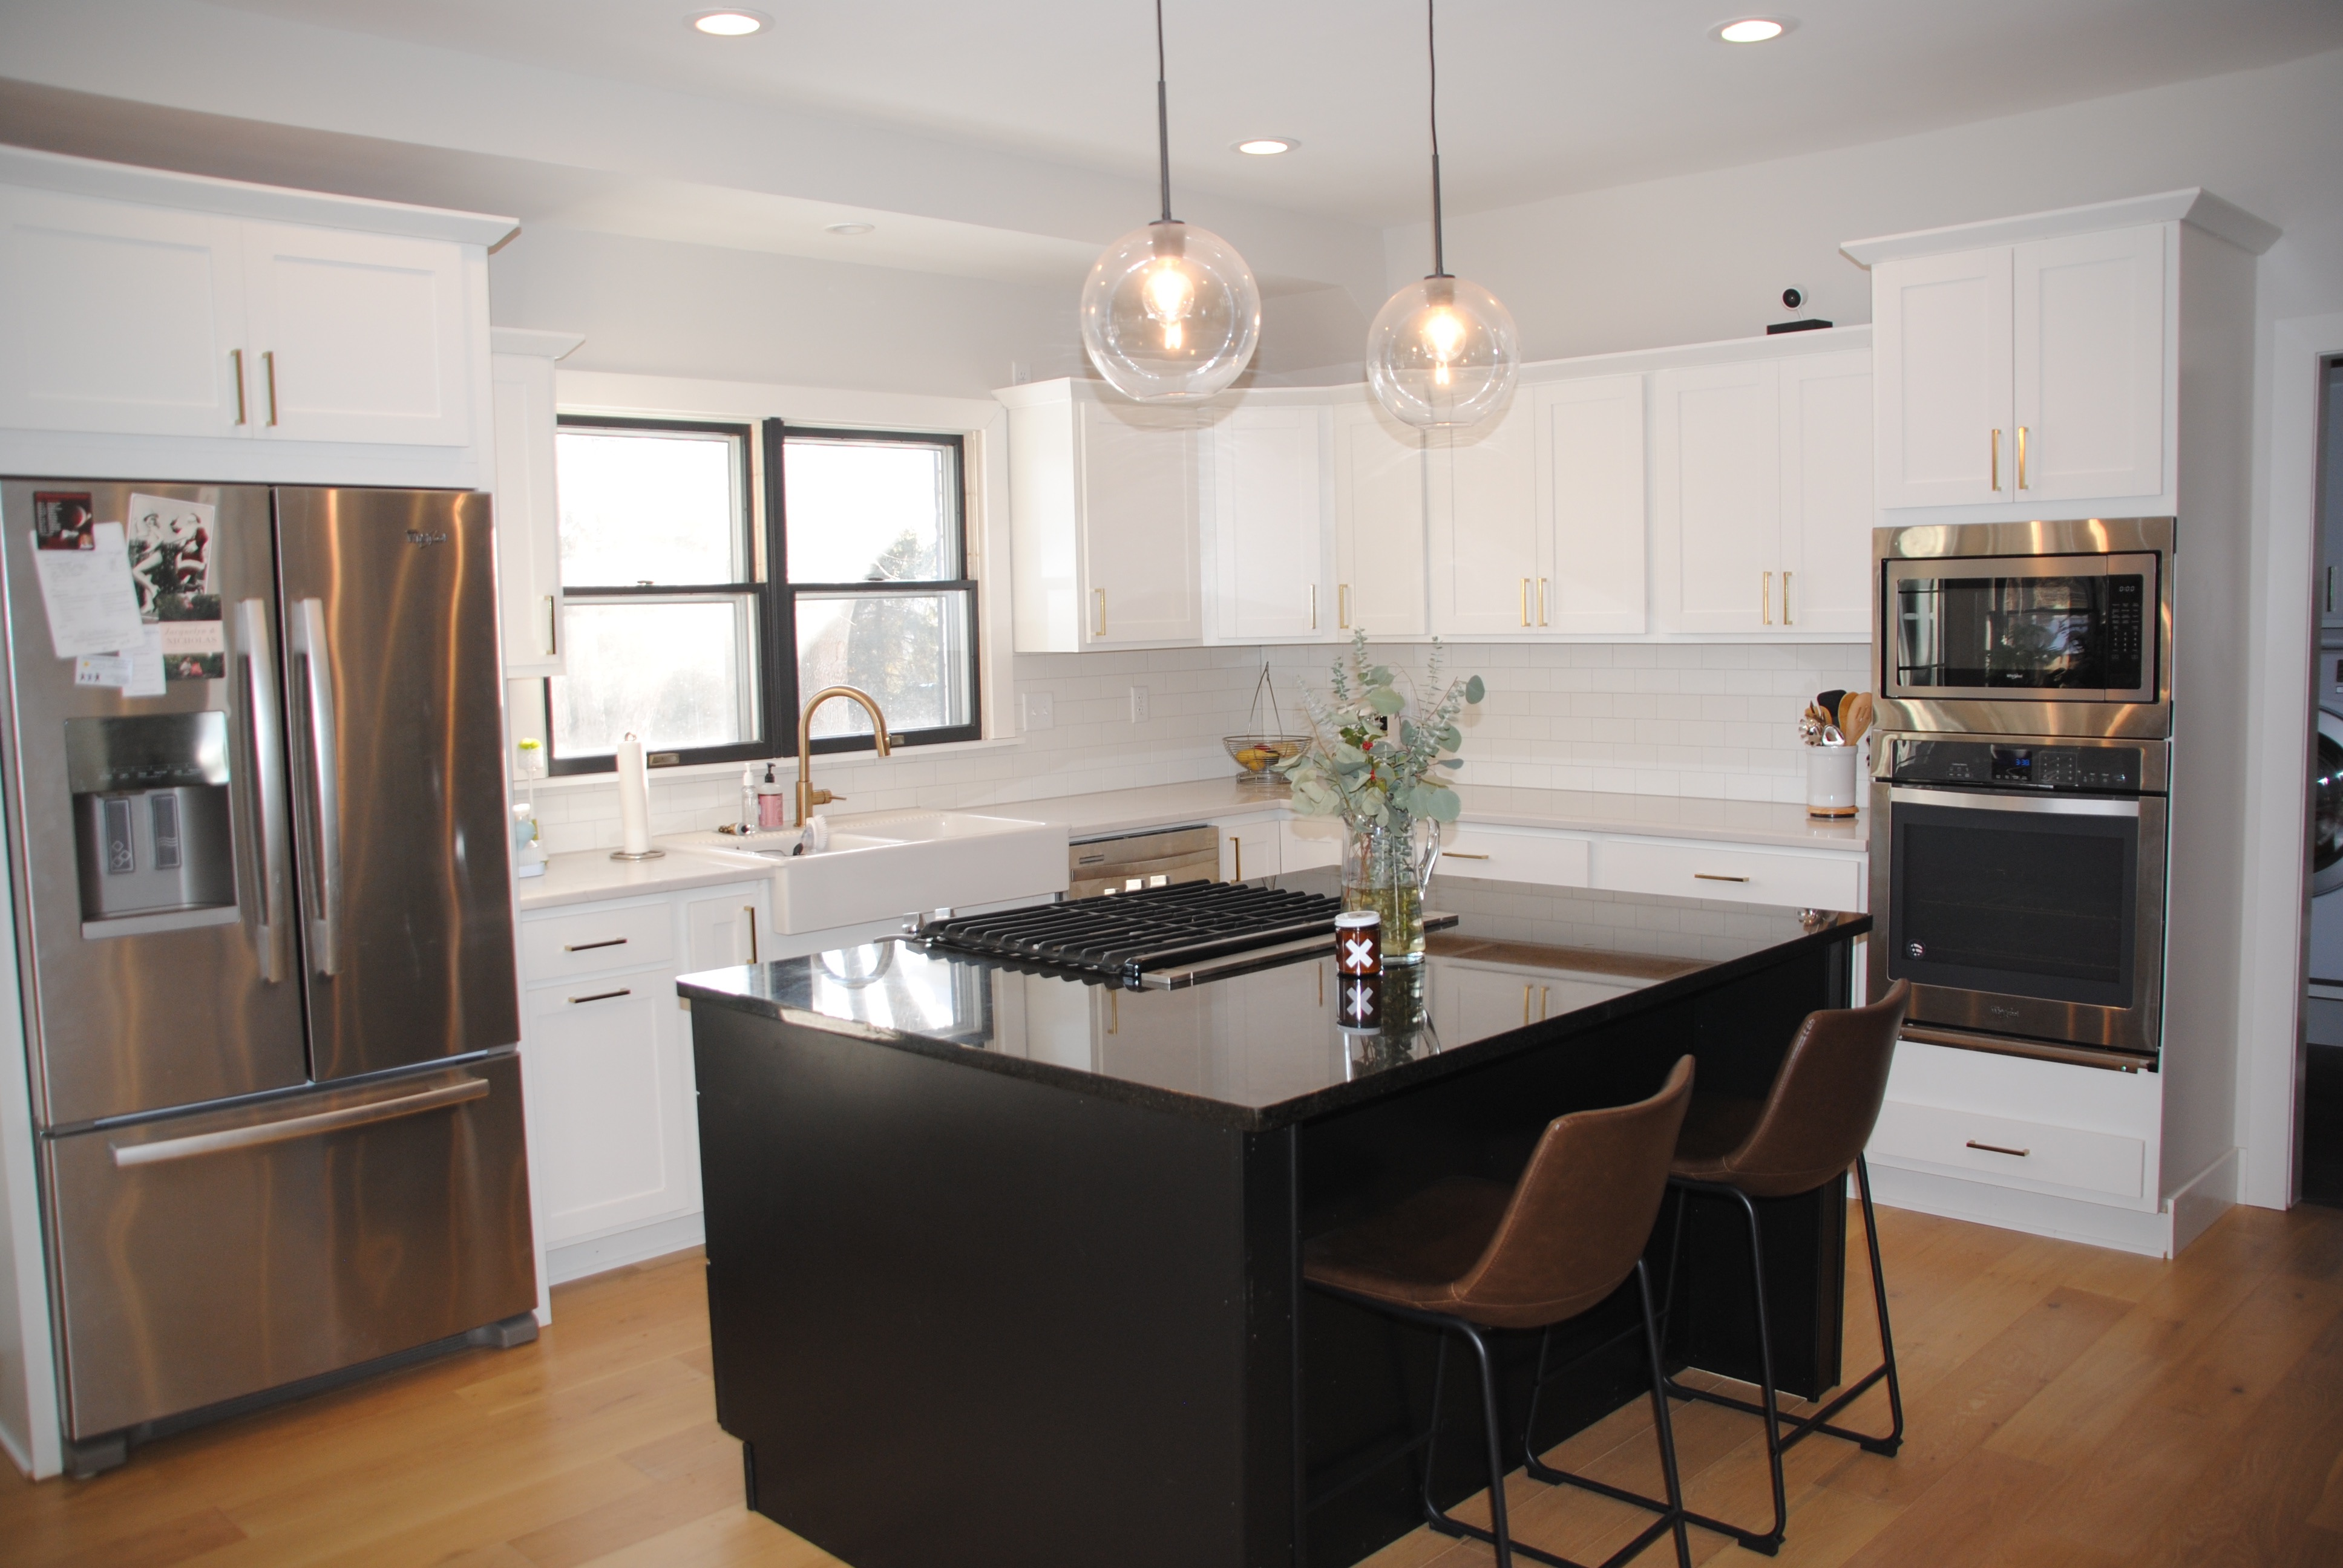 lincoln old renovations white remodel projects ne russell llc kitchen redesign dominion remodeling custom